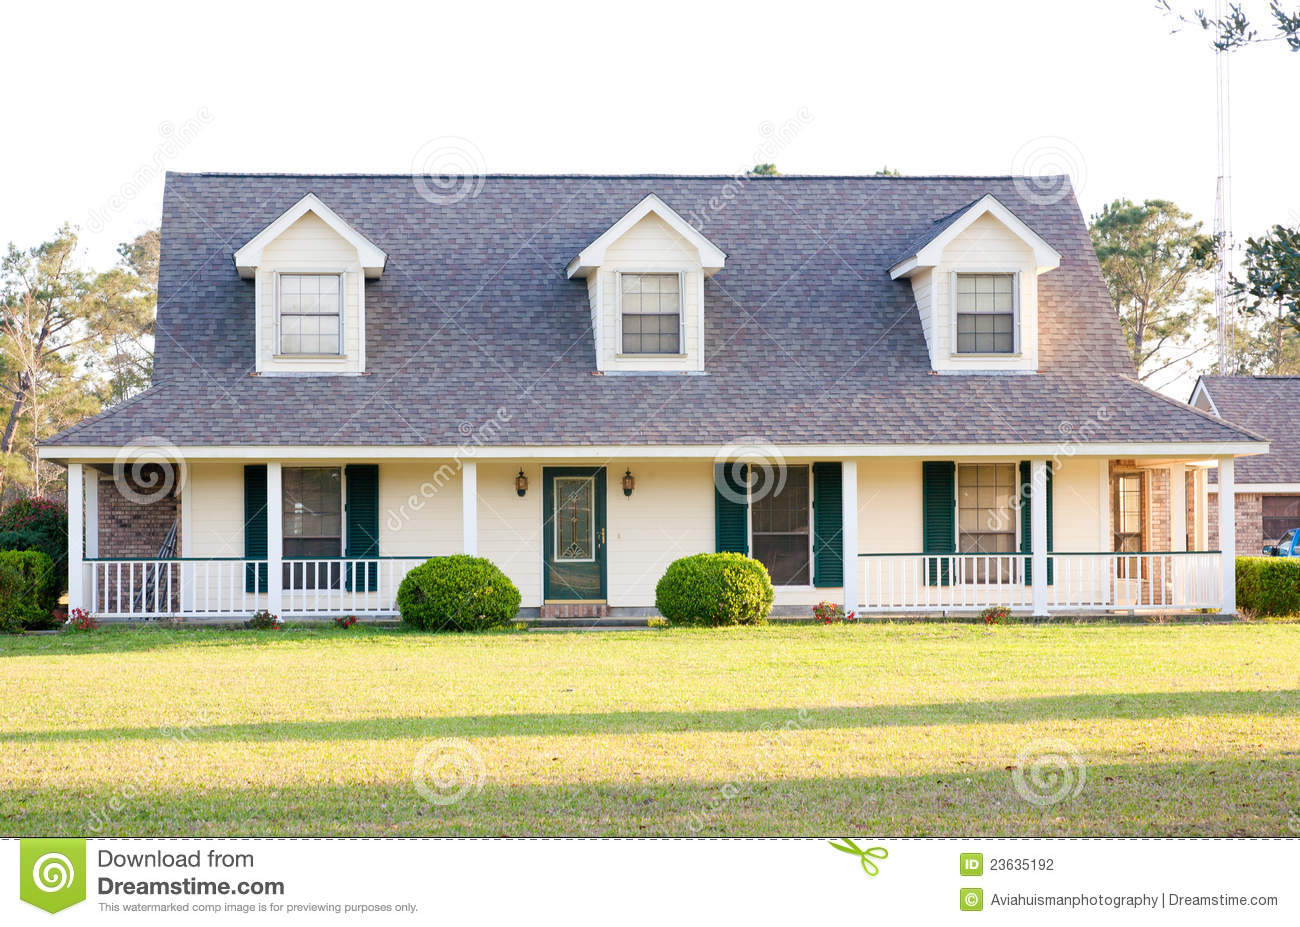 Maison Blanche D Americain De Type De Ranch Photo Stock Image Du